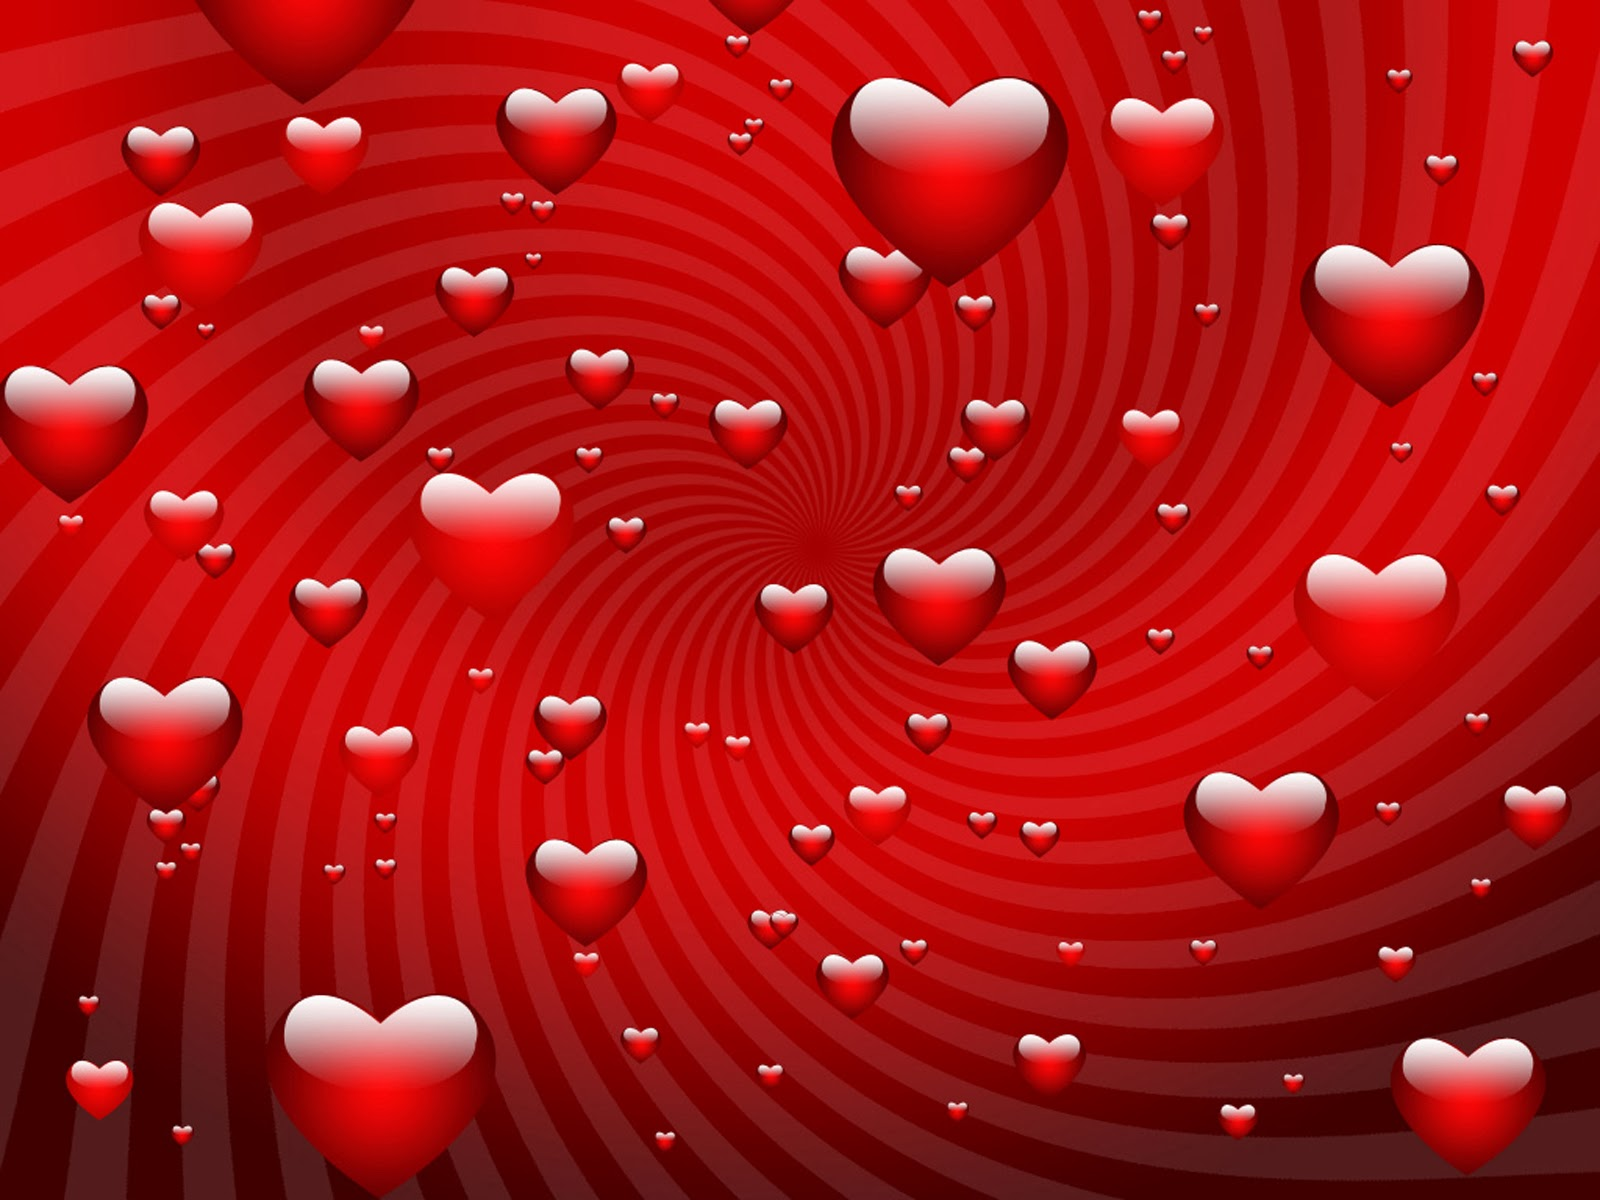 Happy-Valentines-Day-Hearts-And-Hearts-Wishes-Walpaper-HD-Wide